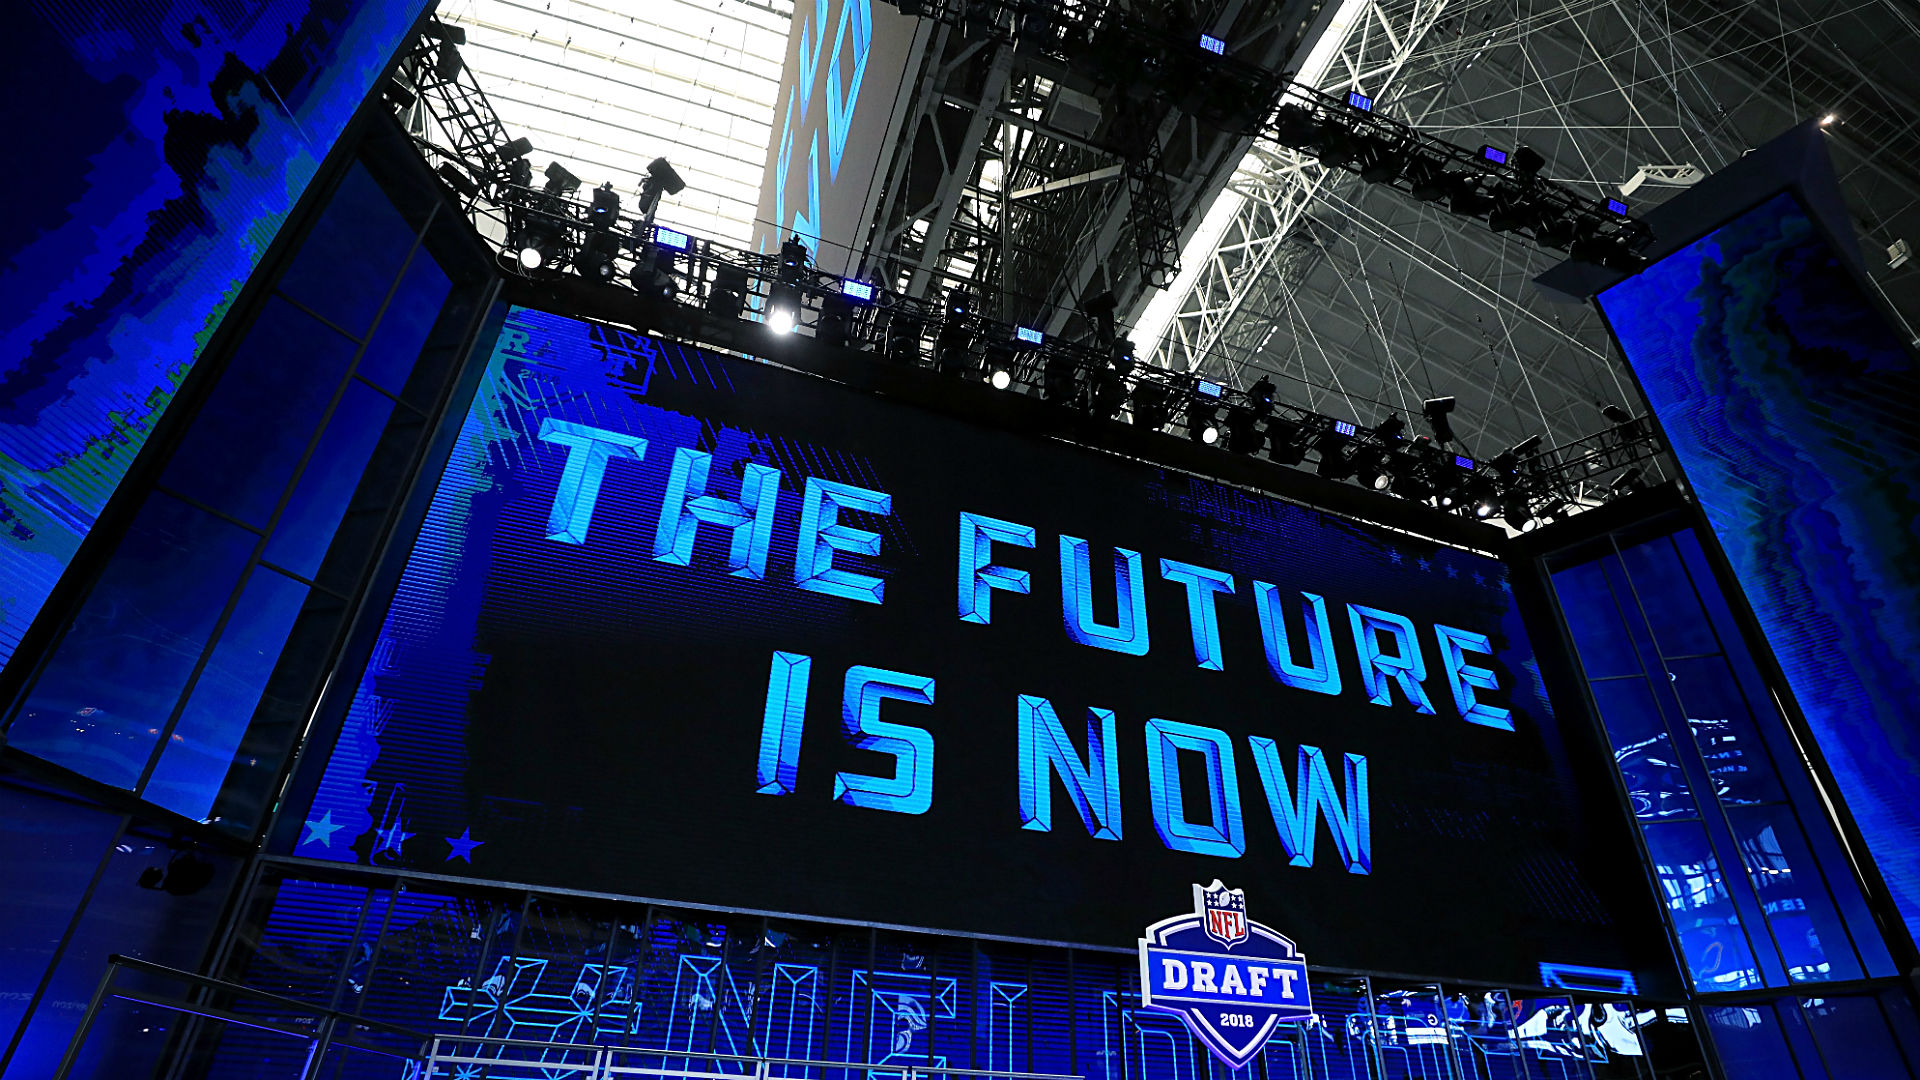 Nfl Draft 2020 >> Future Nfl Draft Locations Host Cities For 2020 Nfl Draft